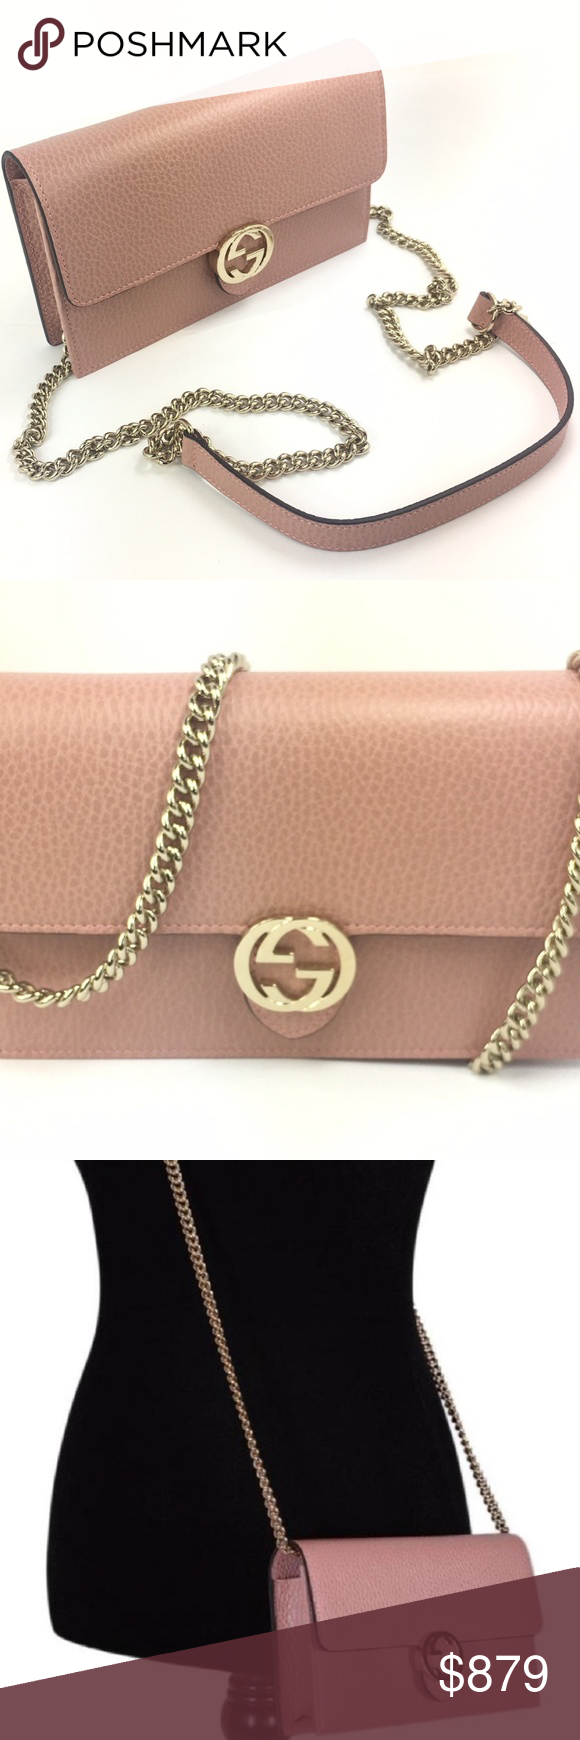 Gucci  510314 GG Closure Chain Crossbody Wallet - Soft Pink Textured Leather  Exterior - Flap c72006e6b4950